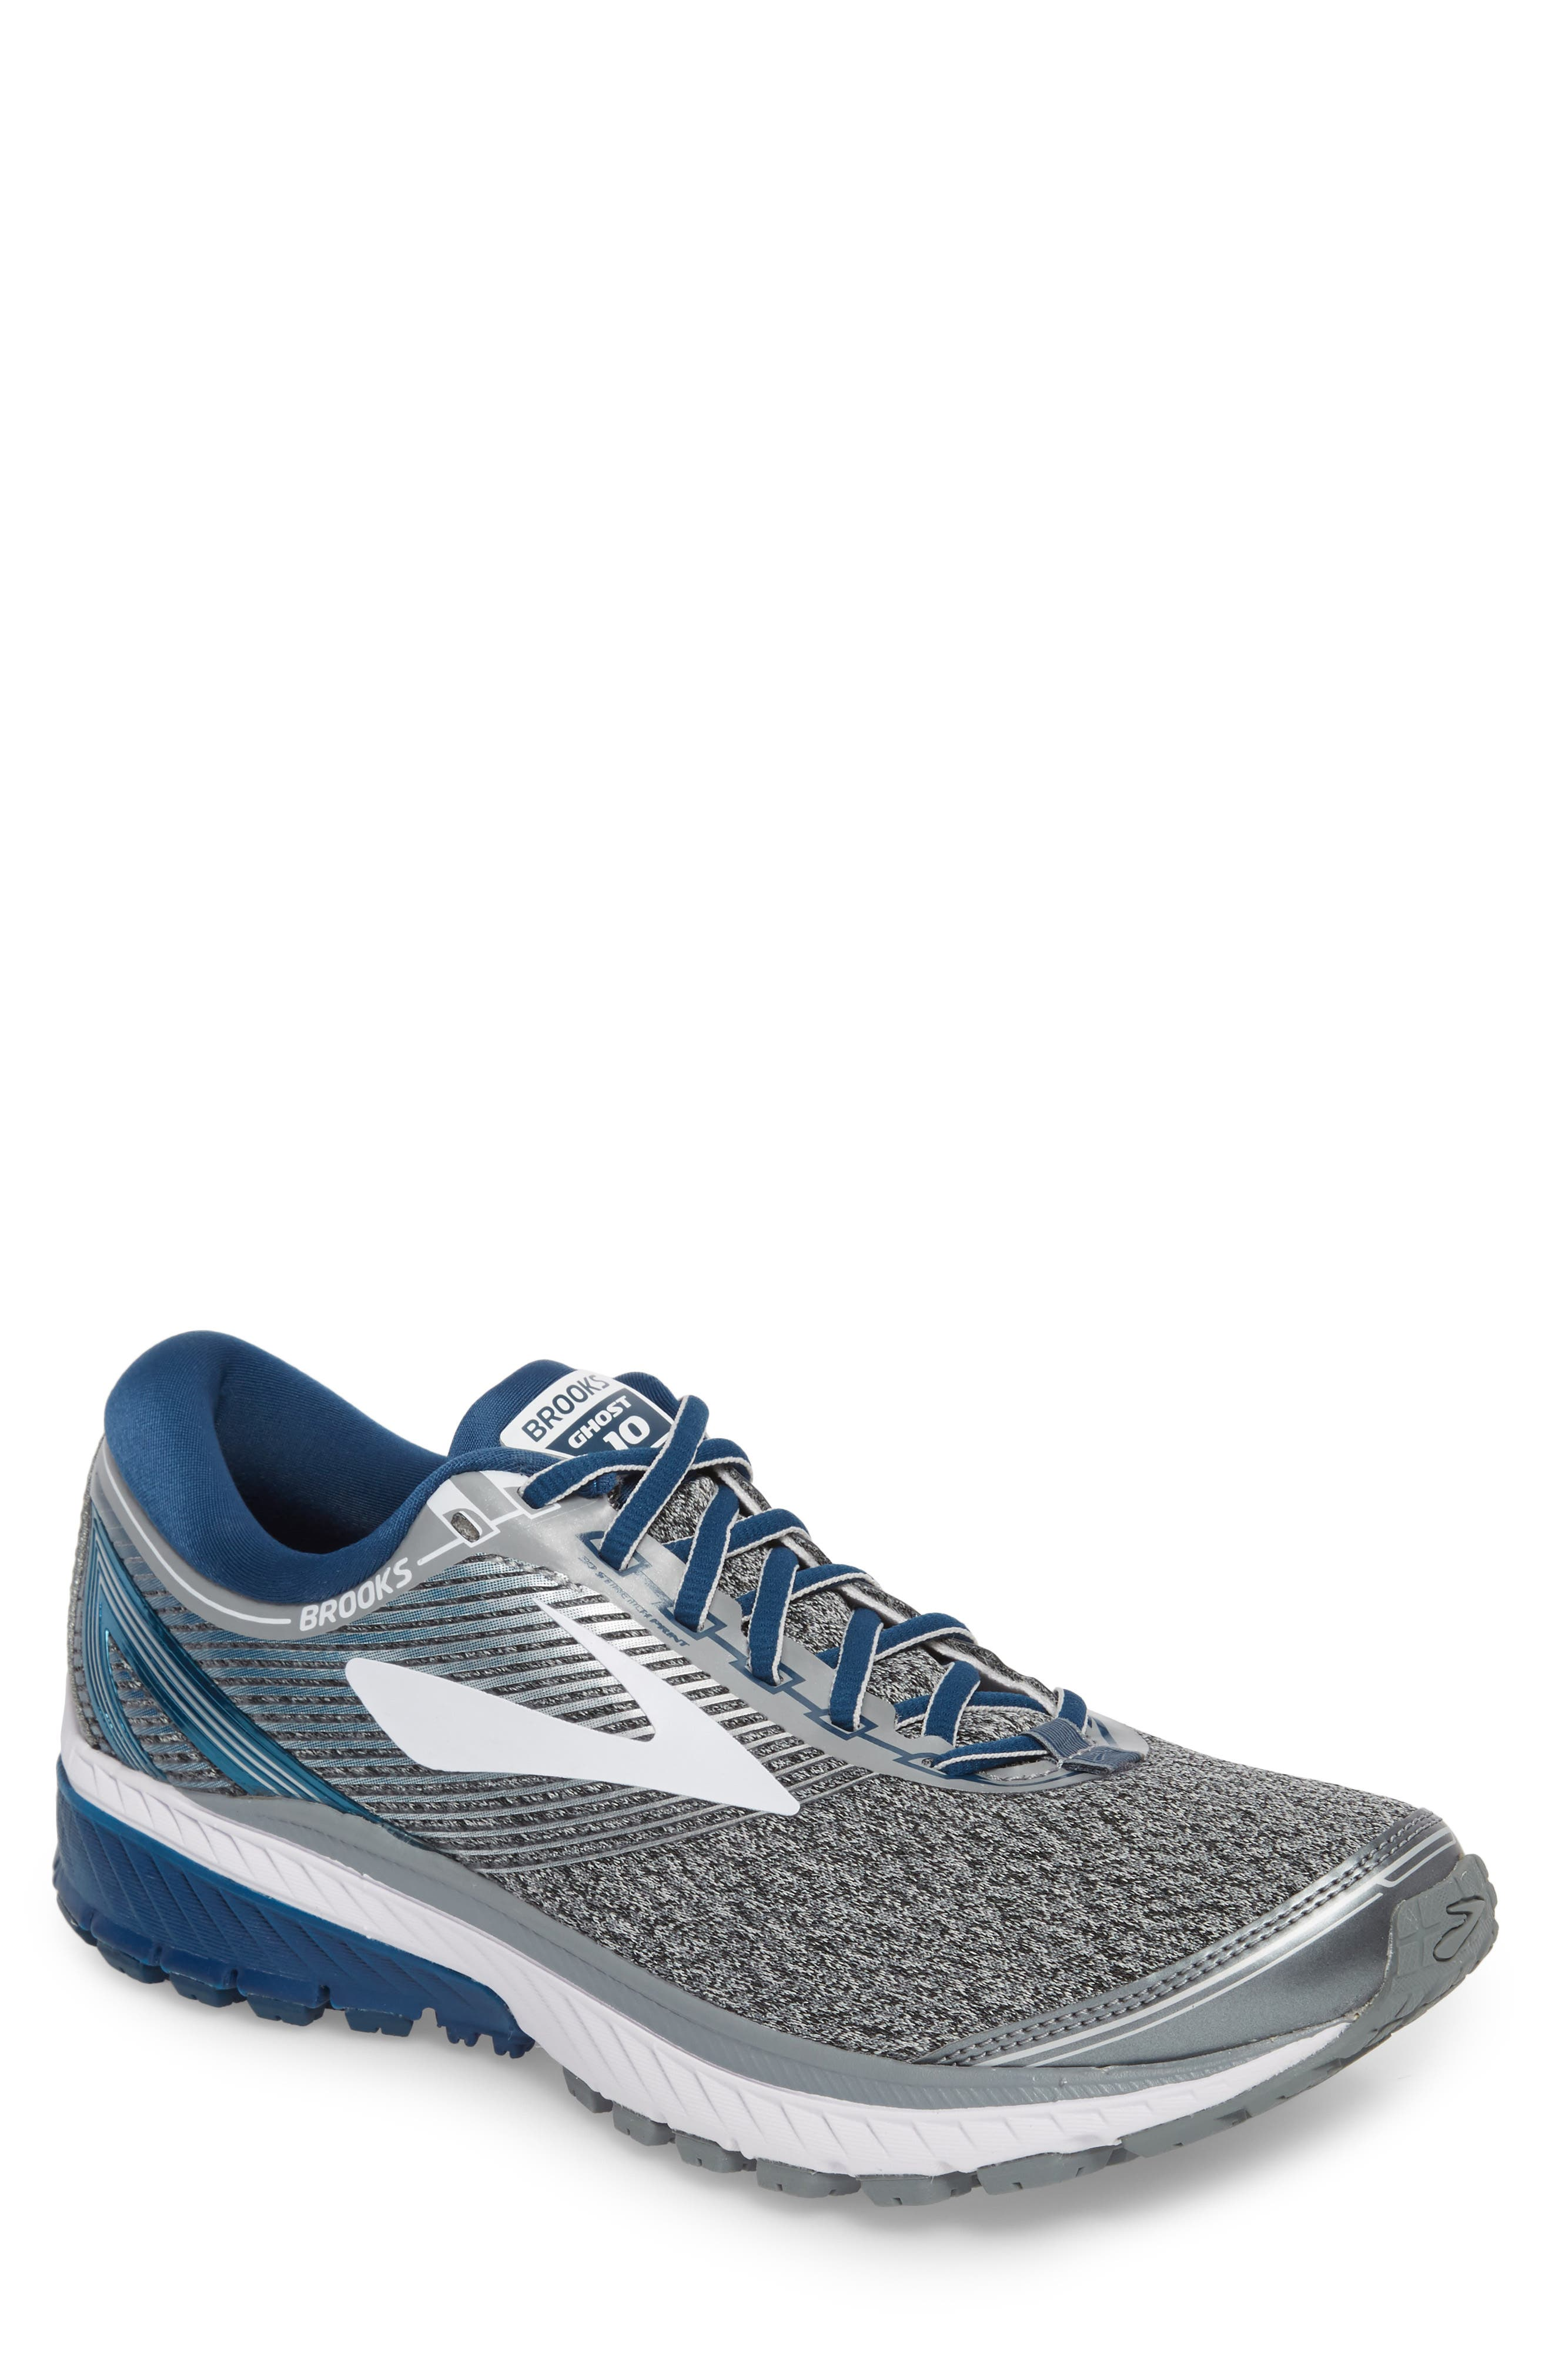 Main Image - Brooks Ghost 10 Running Shoe (Men)